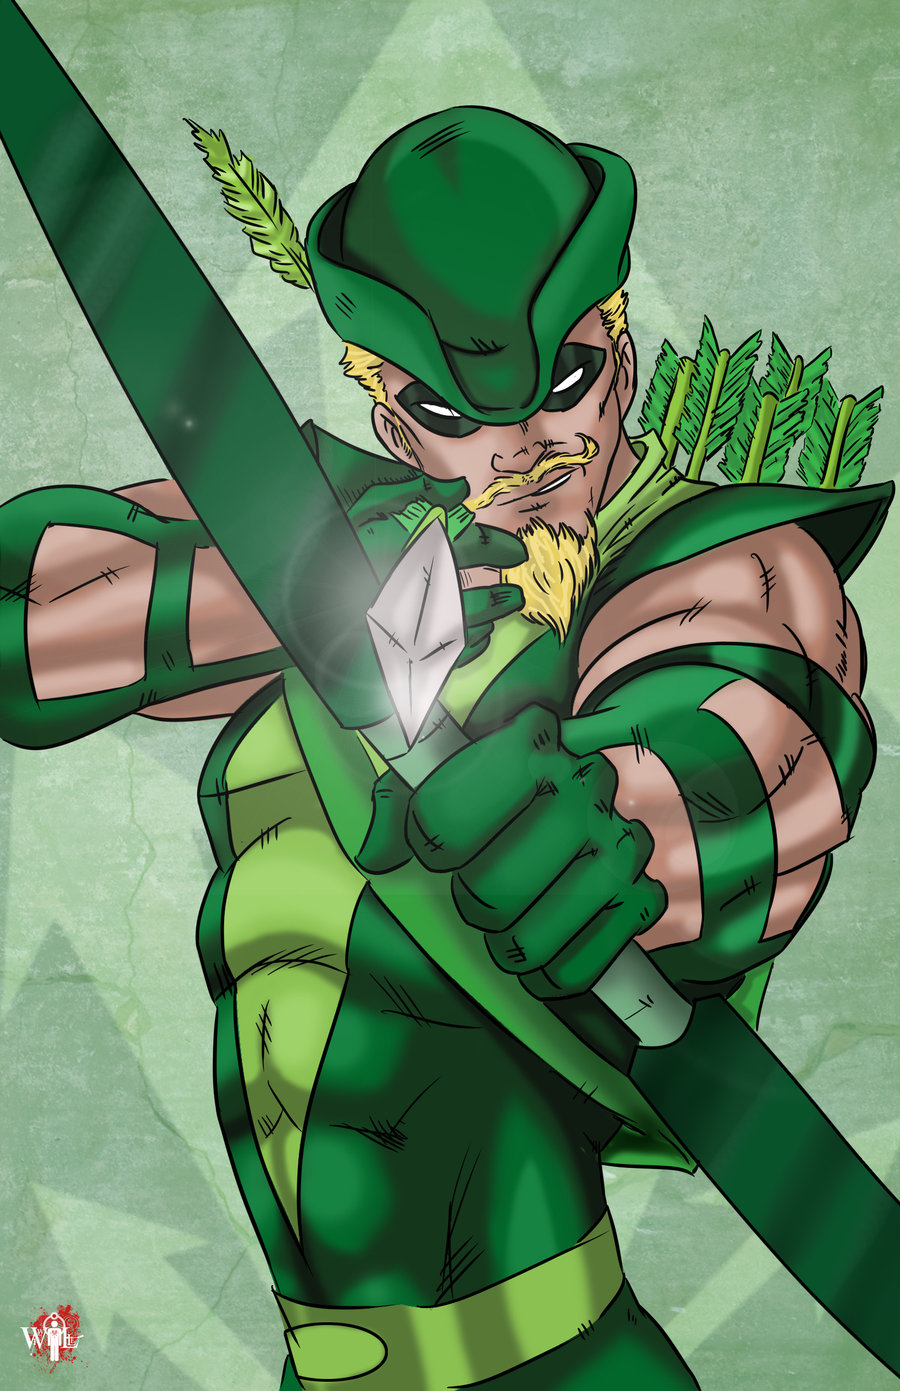 Green arrow image png royalty free Green Arrow by doubleleaf on DeviantArt png royalty free